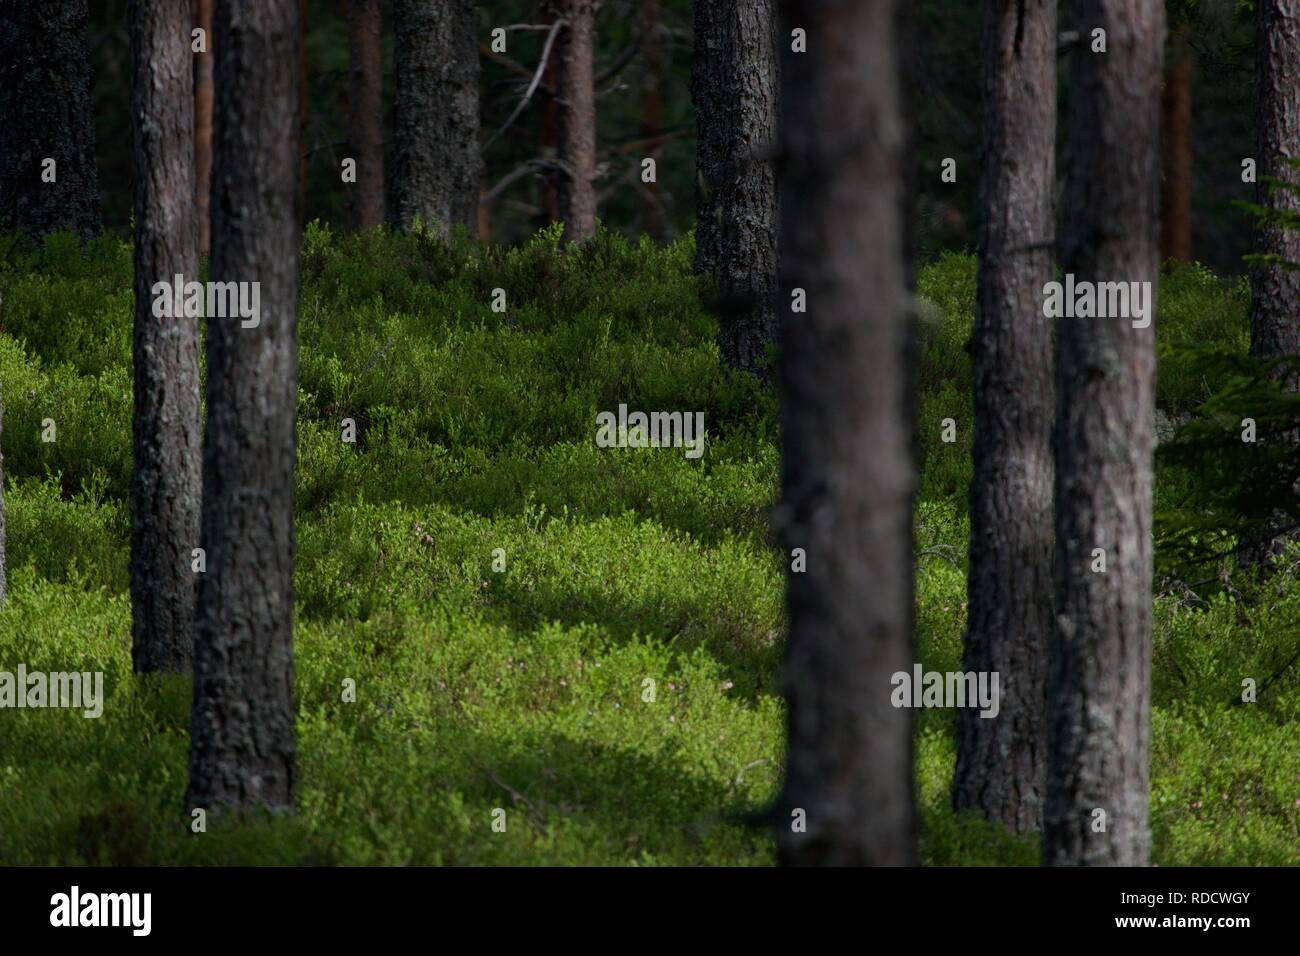 A bilberry carpet covering the forest floor. - Stock Image